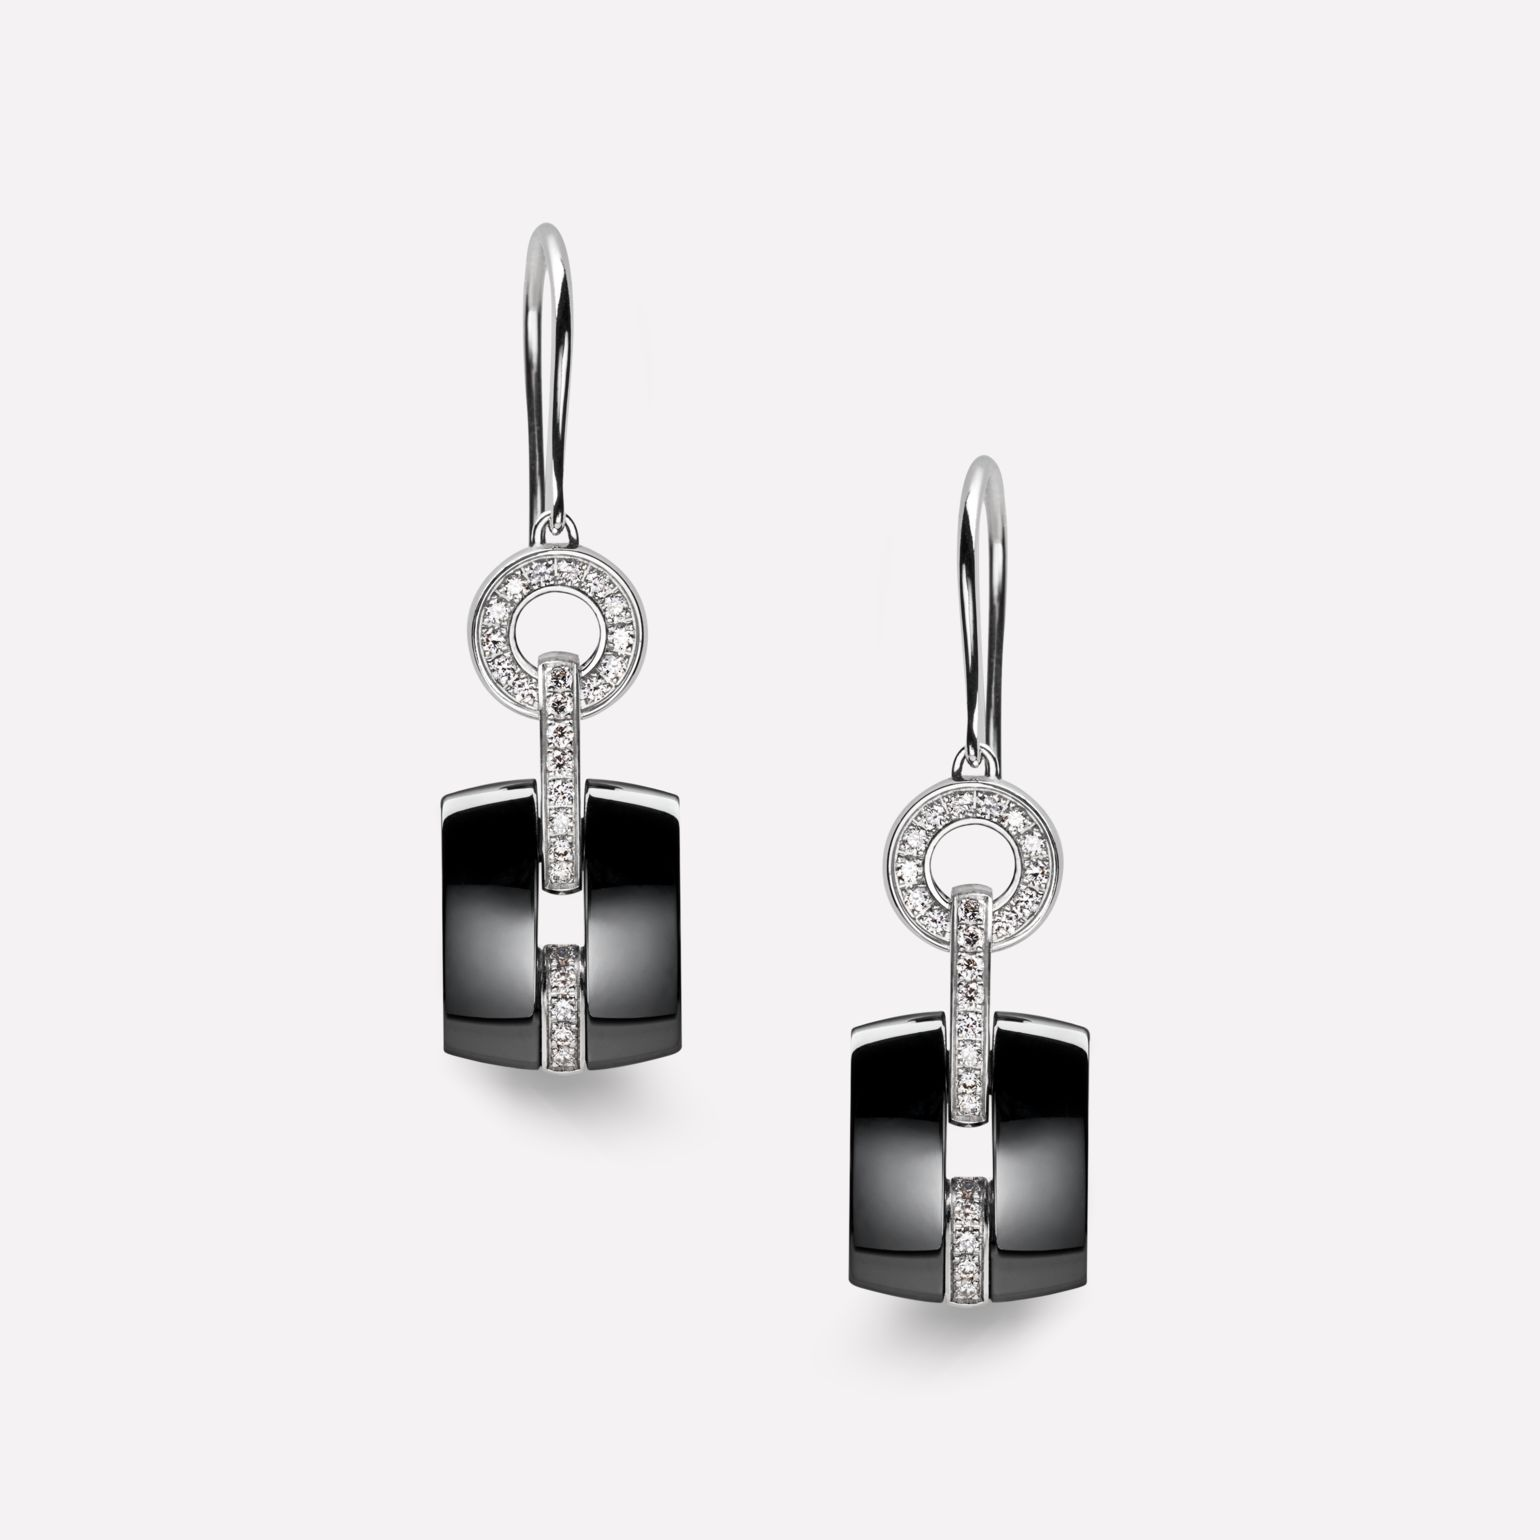 Ultra Earrings Ultra earrings in black ceramic, 18K white gold and diamonds. Stud version.